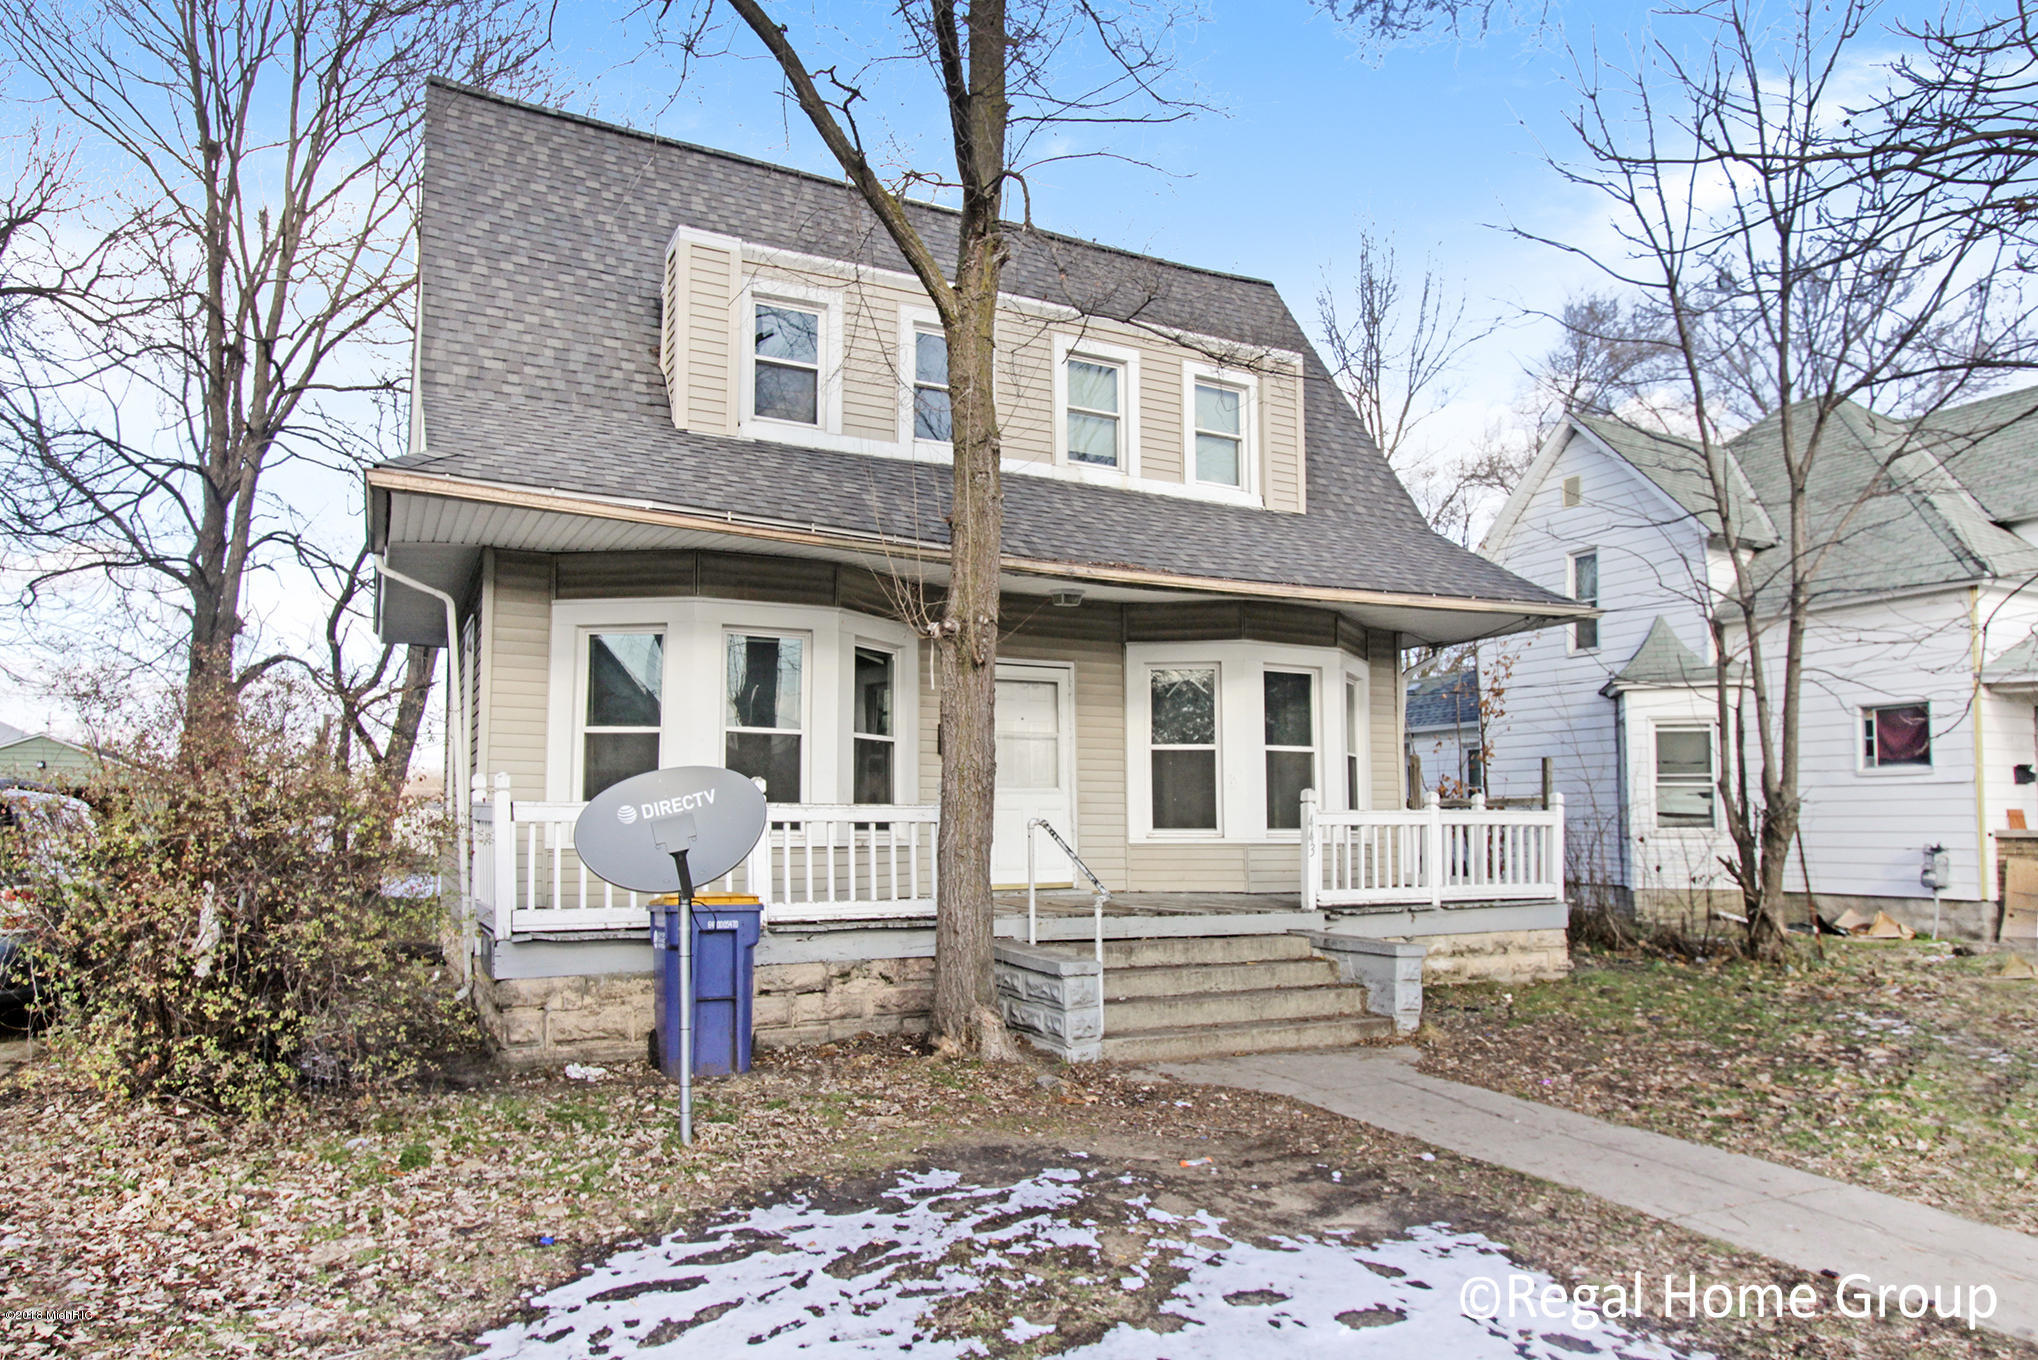 443 Dickinson Street, Grand Rapids, Michigan 49507, 3 Bedrooms Bedrooms, ,2 BathroomsBathrooms,Residential,For Sale,Dickinson,18057985